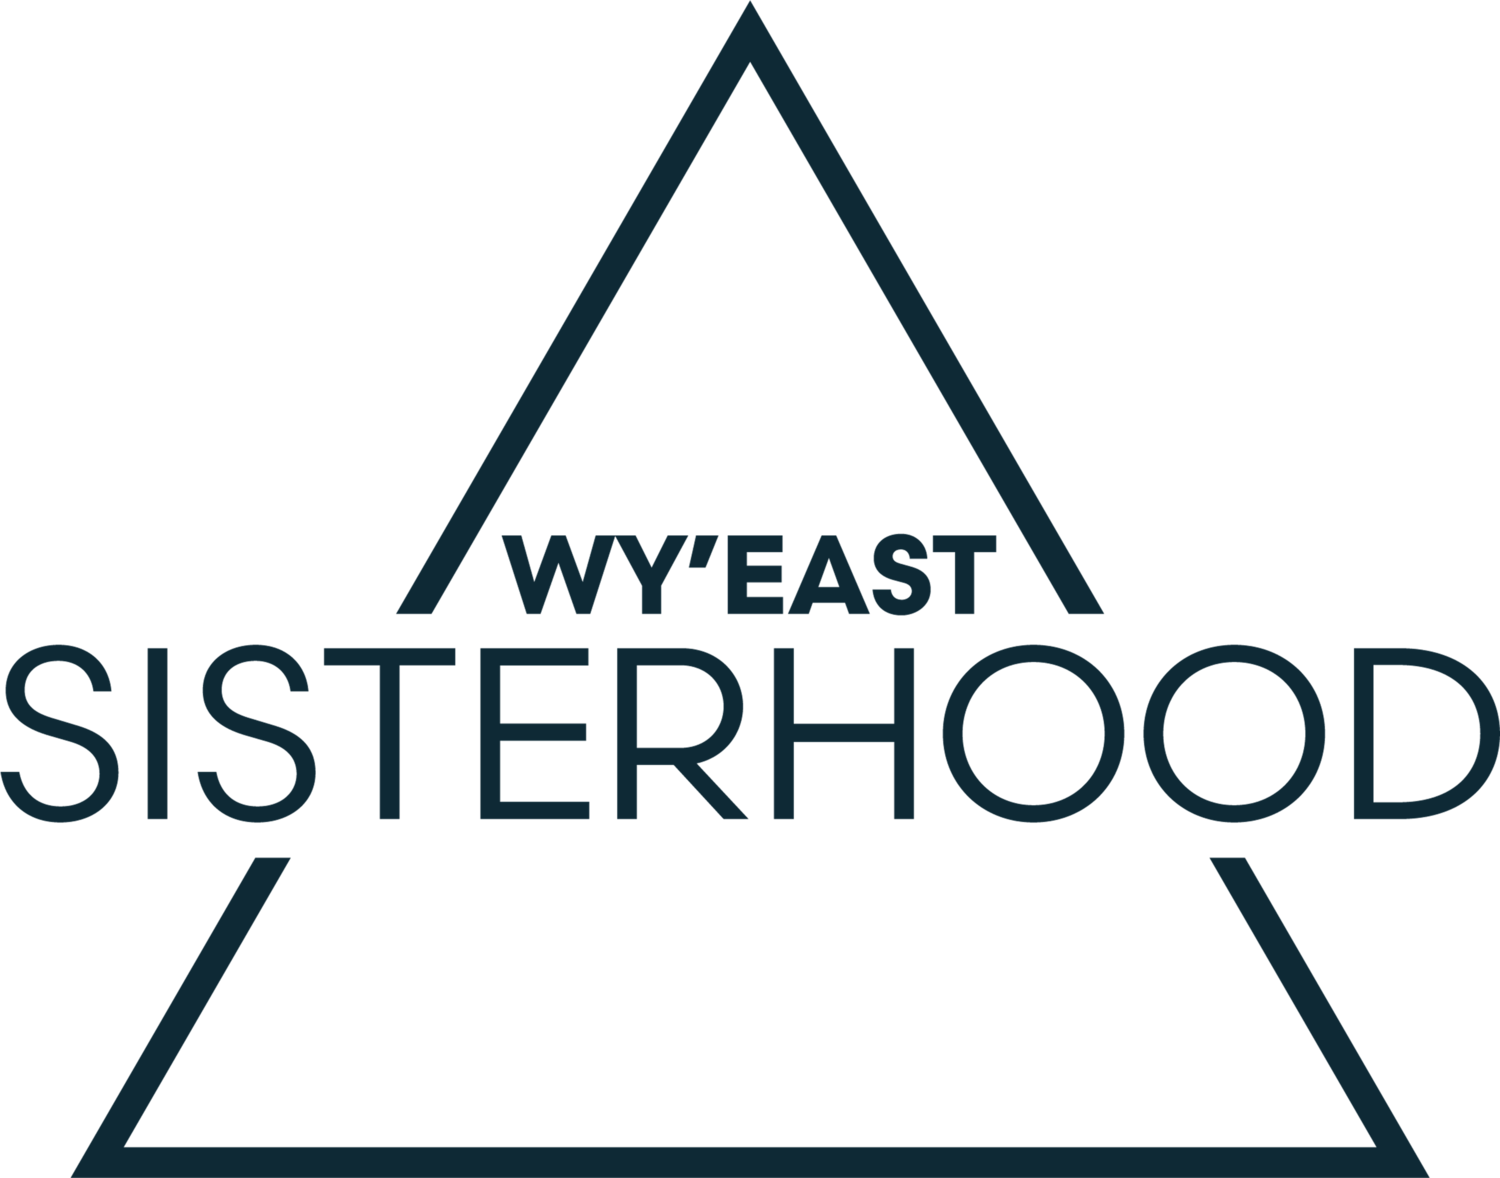 Wy'east SisterHood